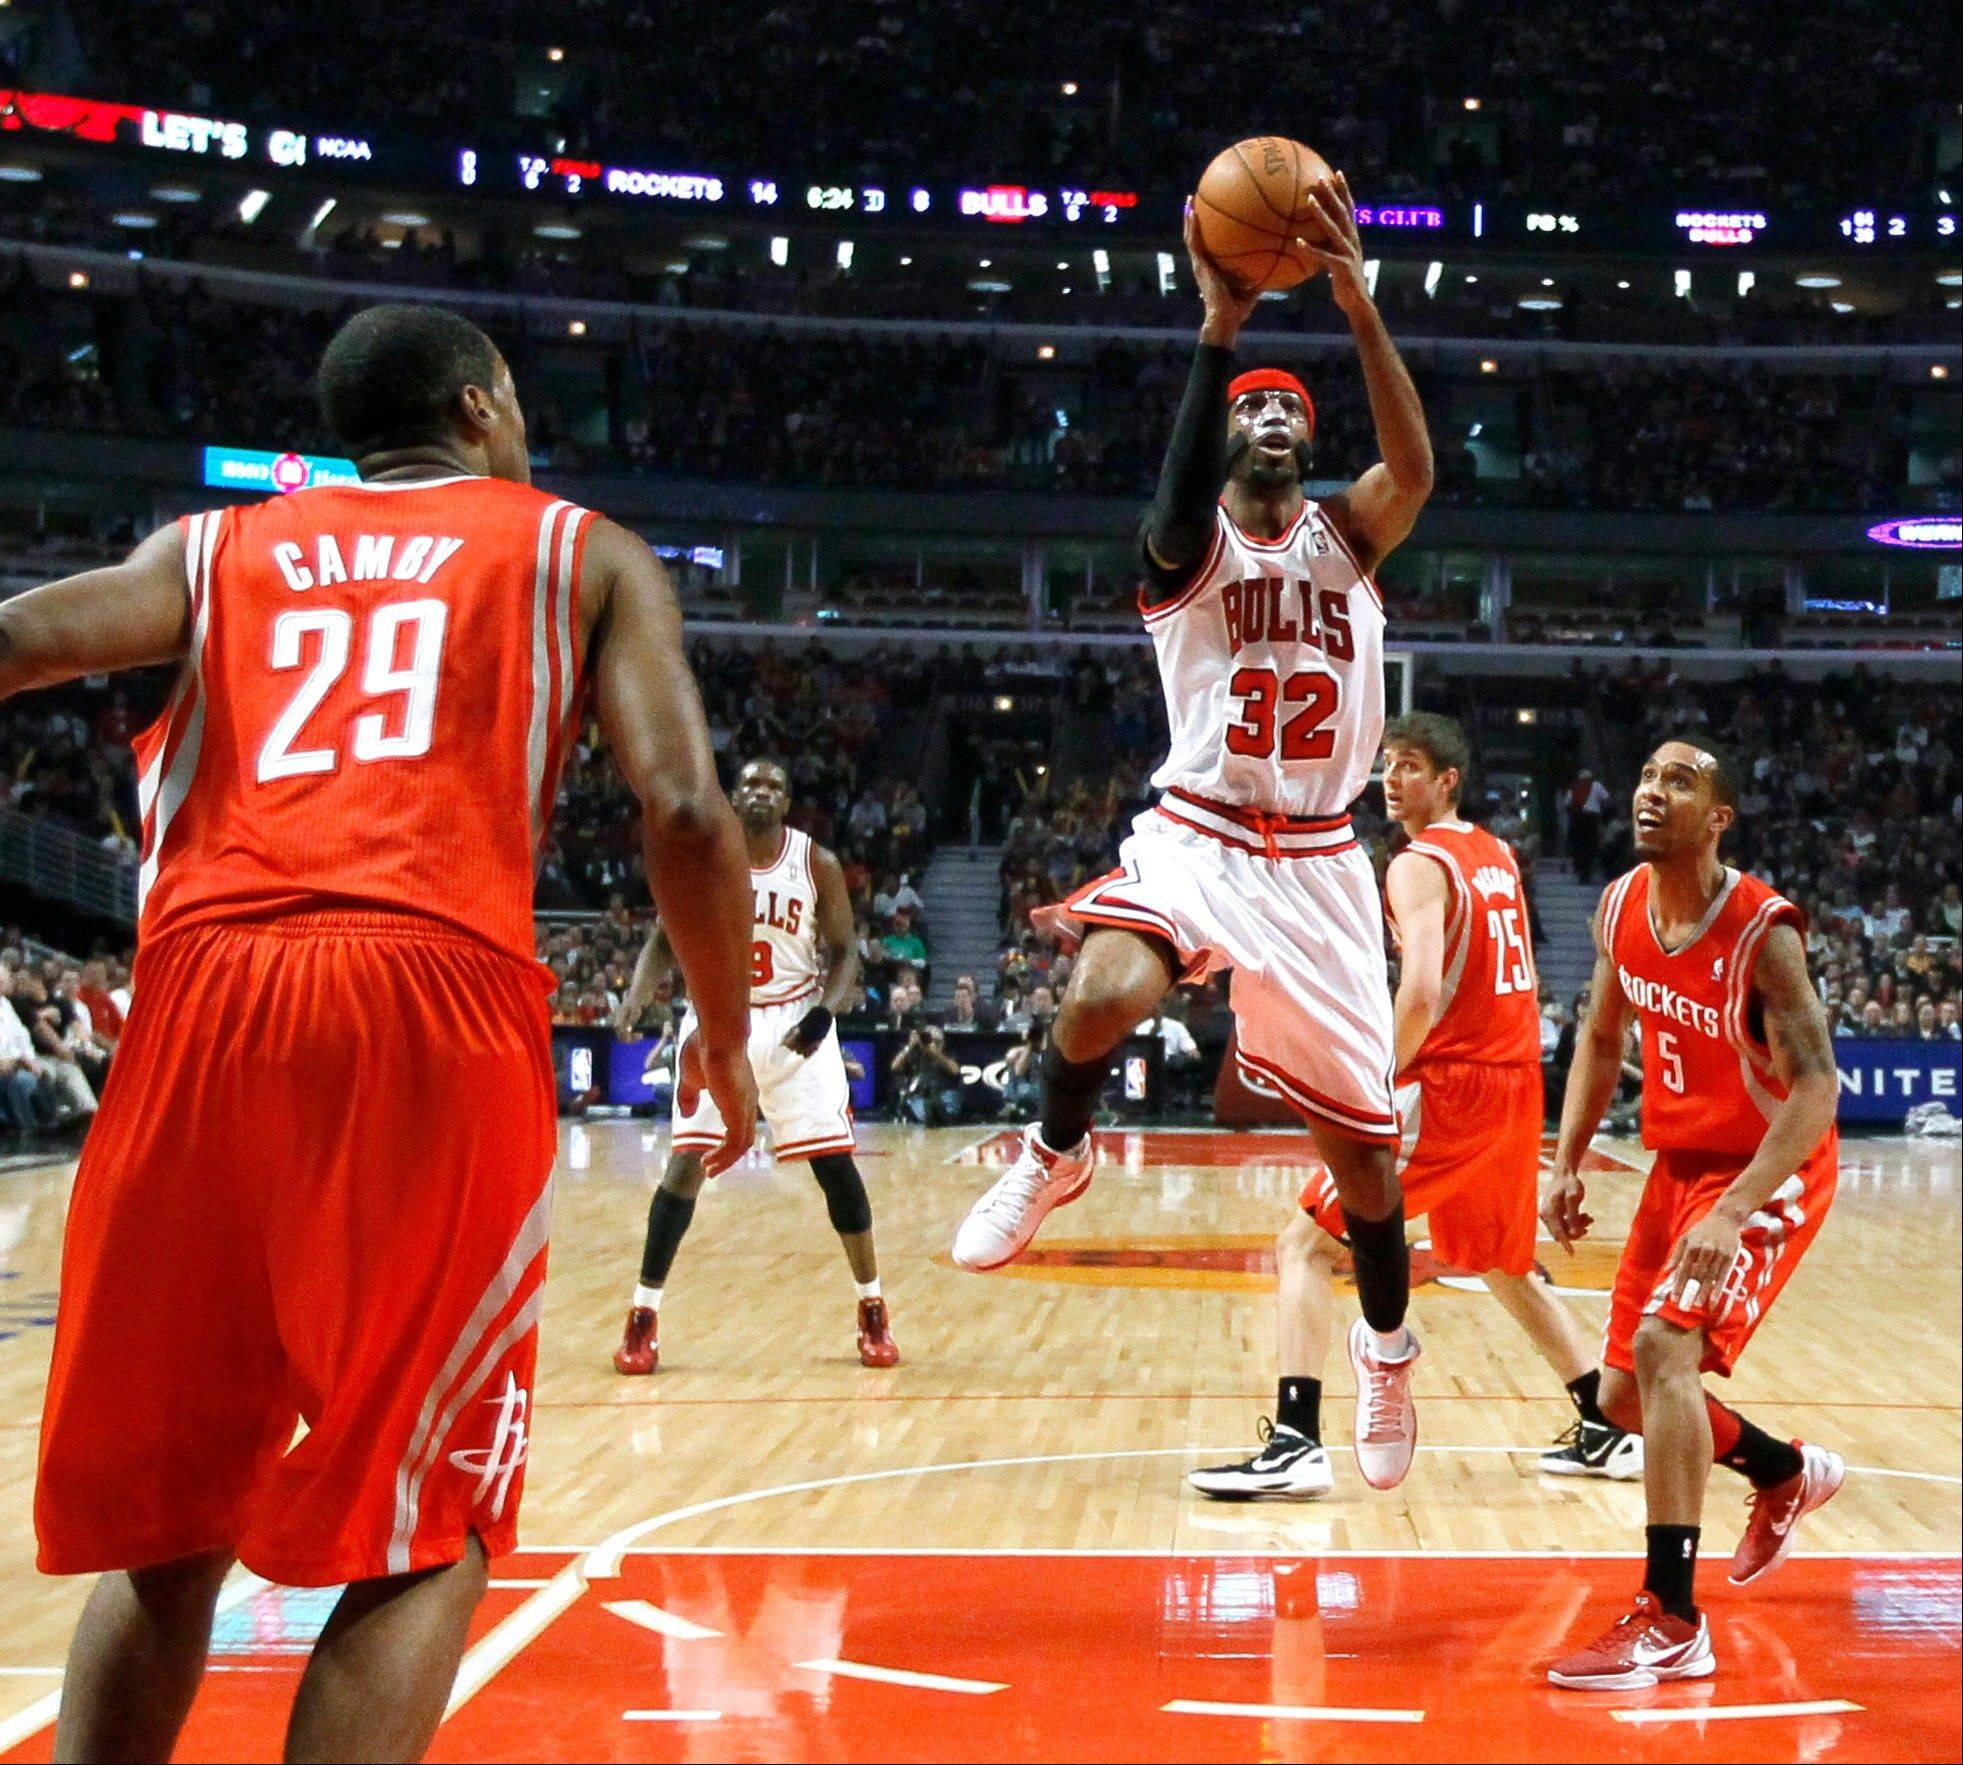 In his first game back after injury, Chicago Bulls guard Richard Hamilton (32) shoots between Houston Rockets center Marcus Camby (29) and guard Courtney Lee during the first half of an NBA basketball game Monday, April 2, 2012, in Chicago.